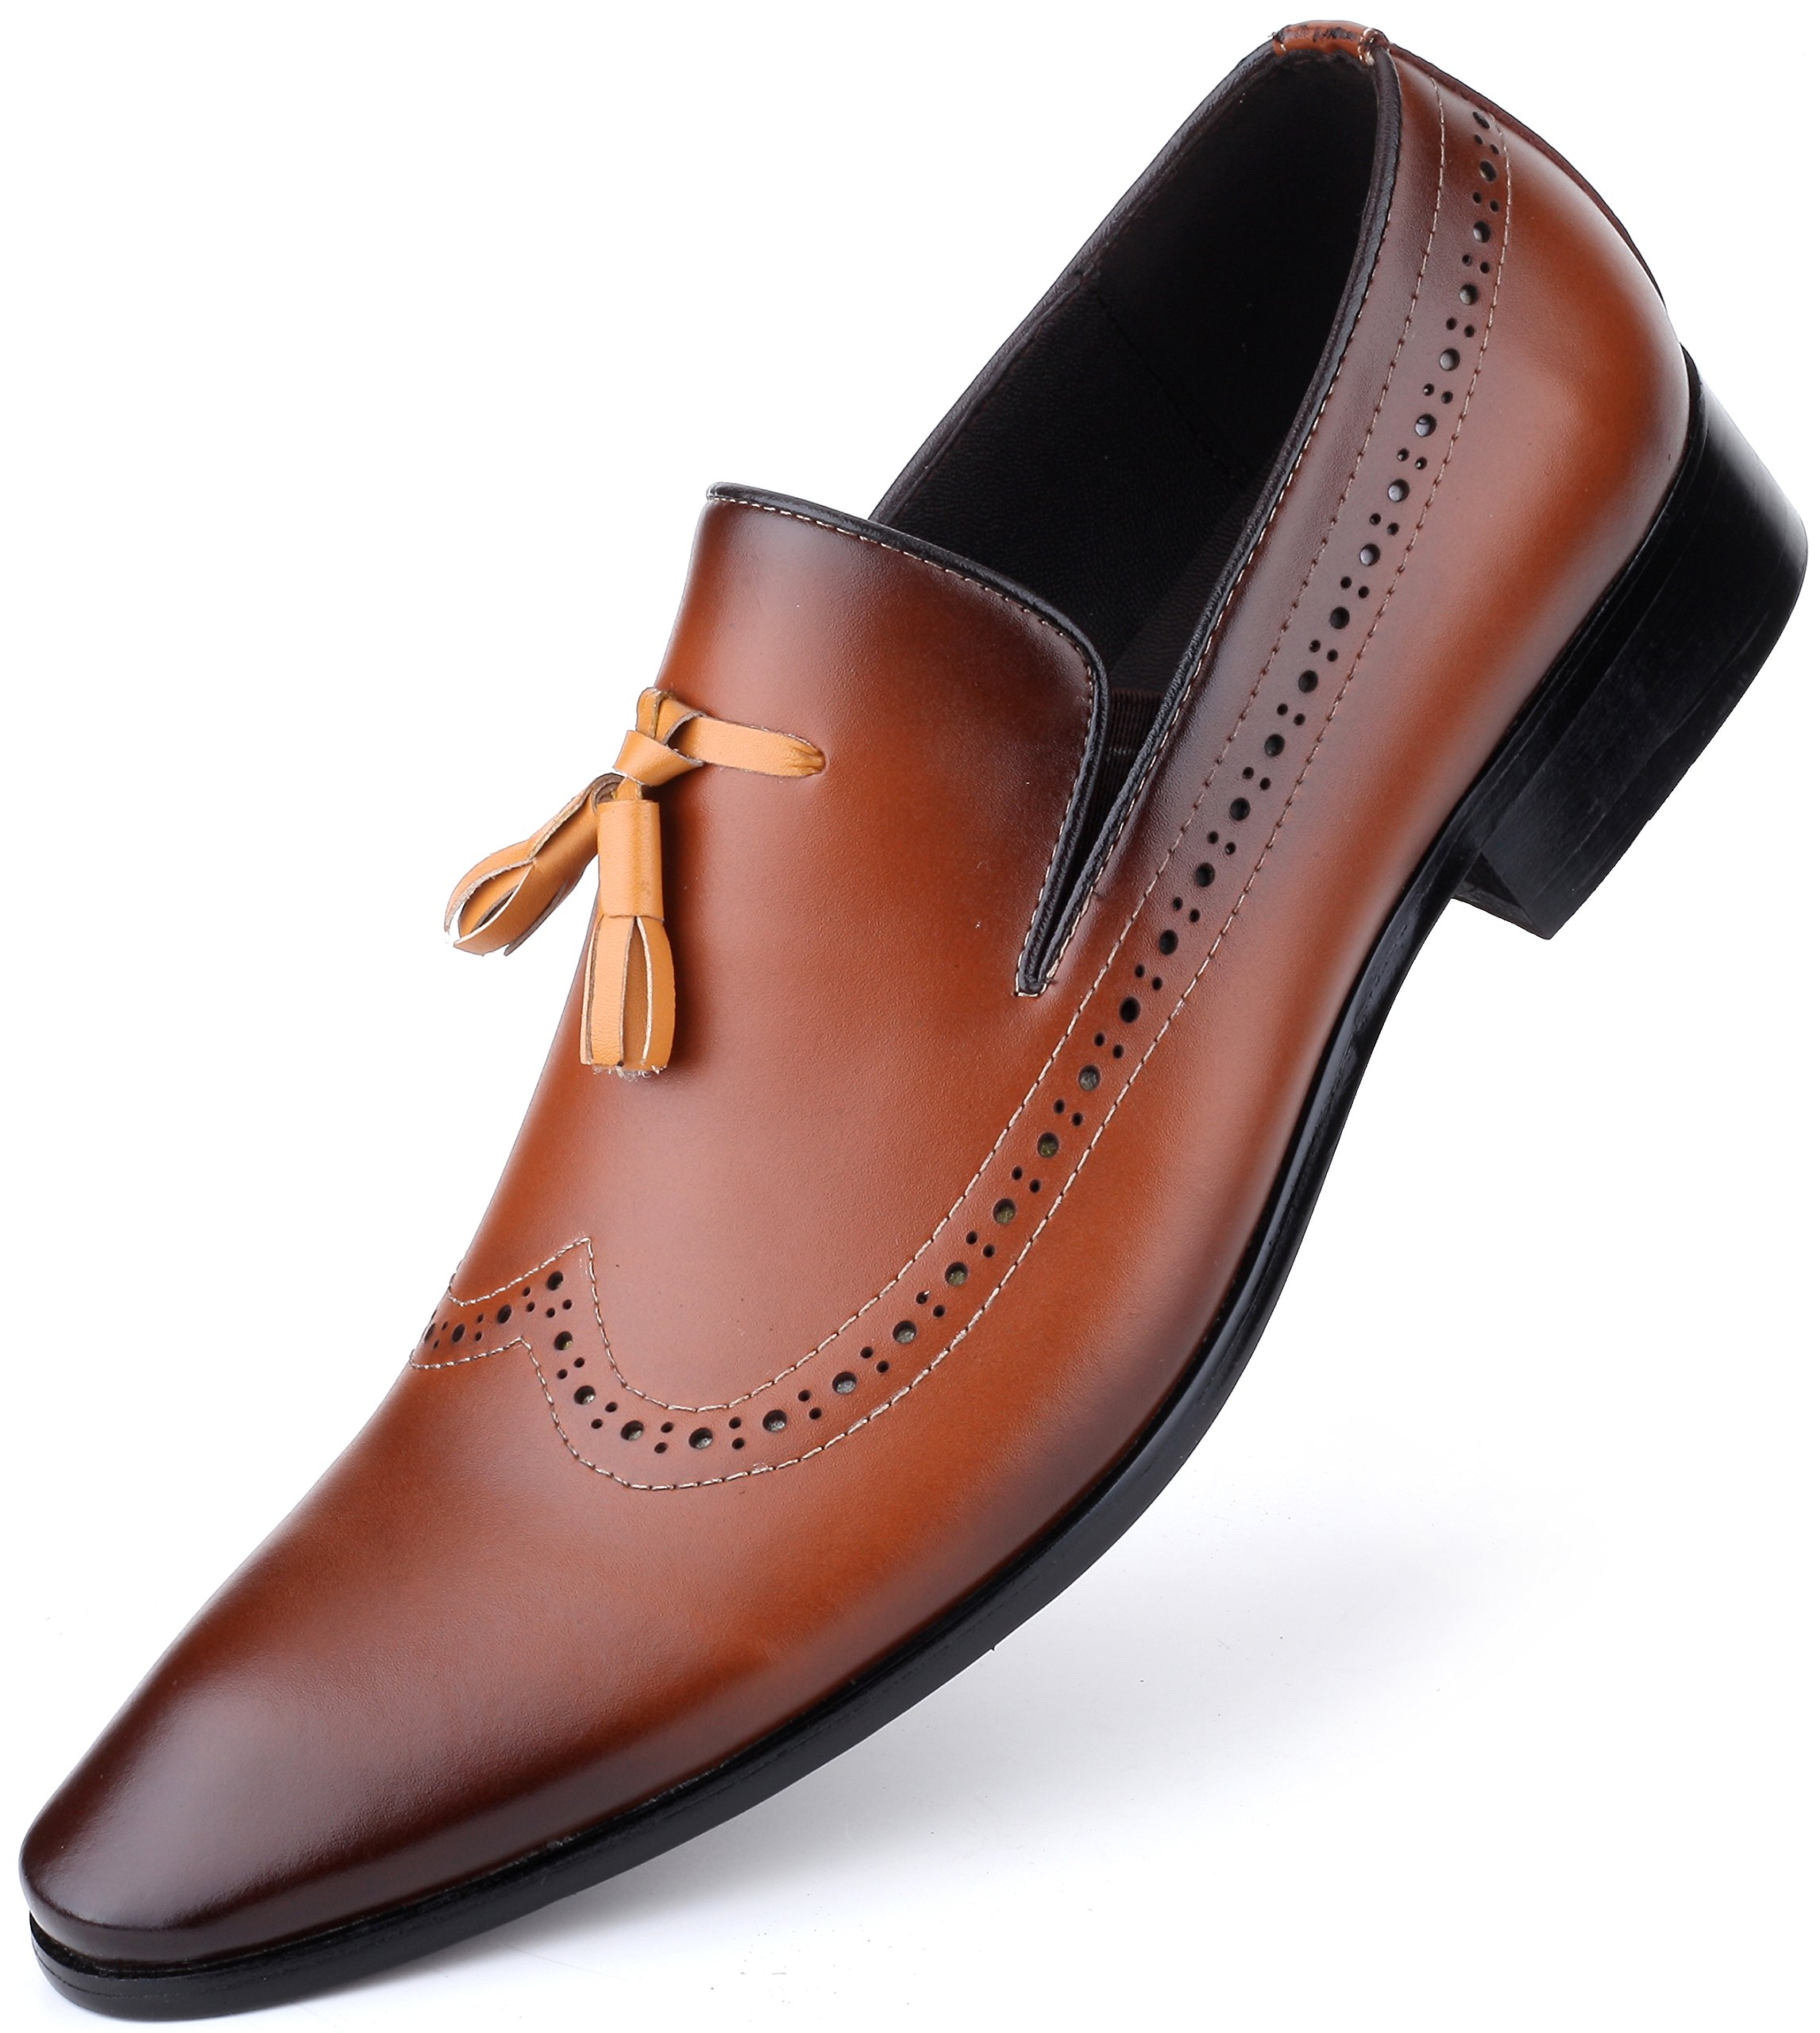 Mio Marino Mens Dress Shoes Oxford - Wingtip Loafers - MonkStrap Leather Shoes For Men, in a Shoe Bag - Umber